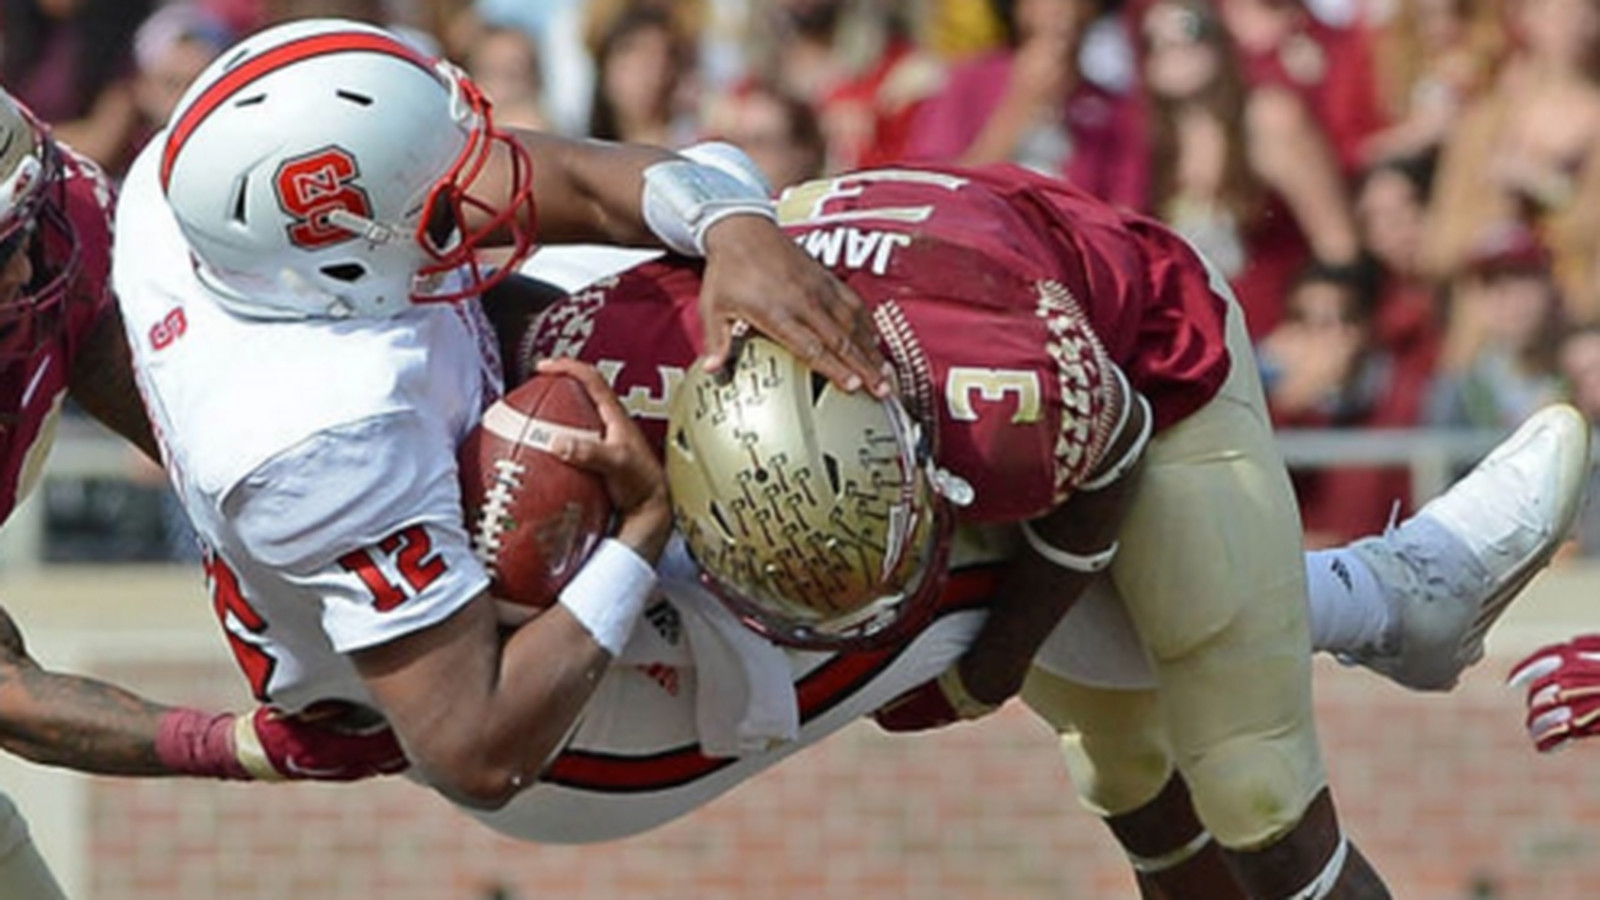 derwin james sacks nc state quarterback with the de-cleater.